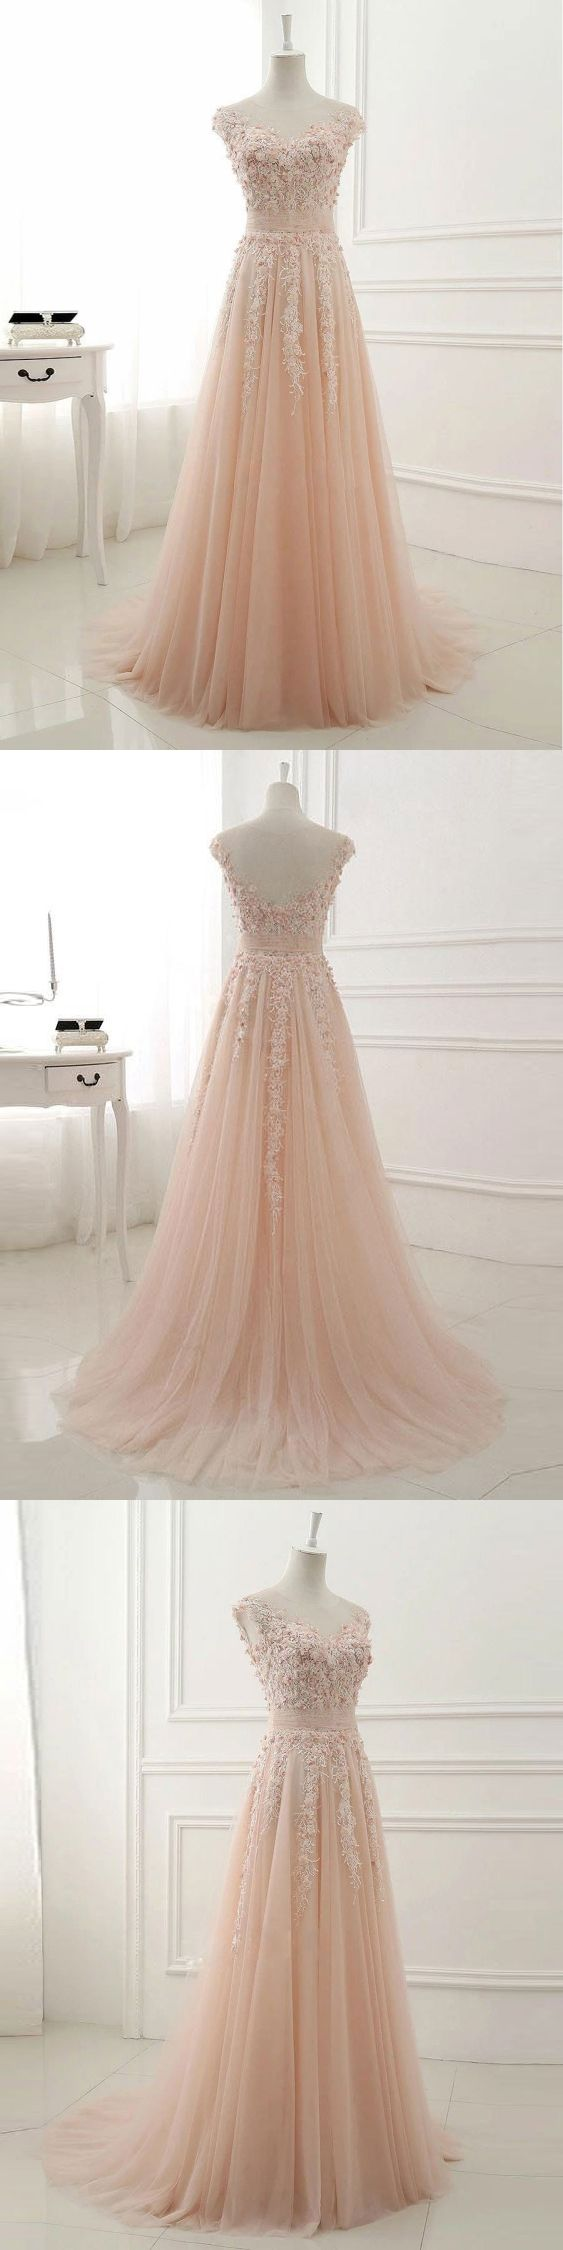 lace appliqued prom dresses,long prom dresses,prom dresses 2018,pageant dresses,prom dresses for teens,party dresses #sheergirl